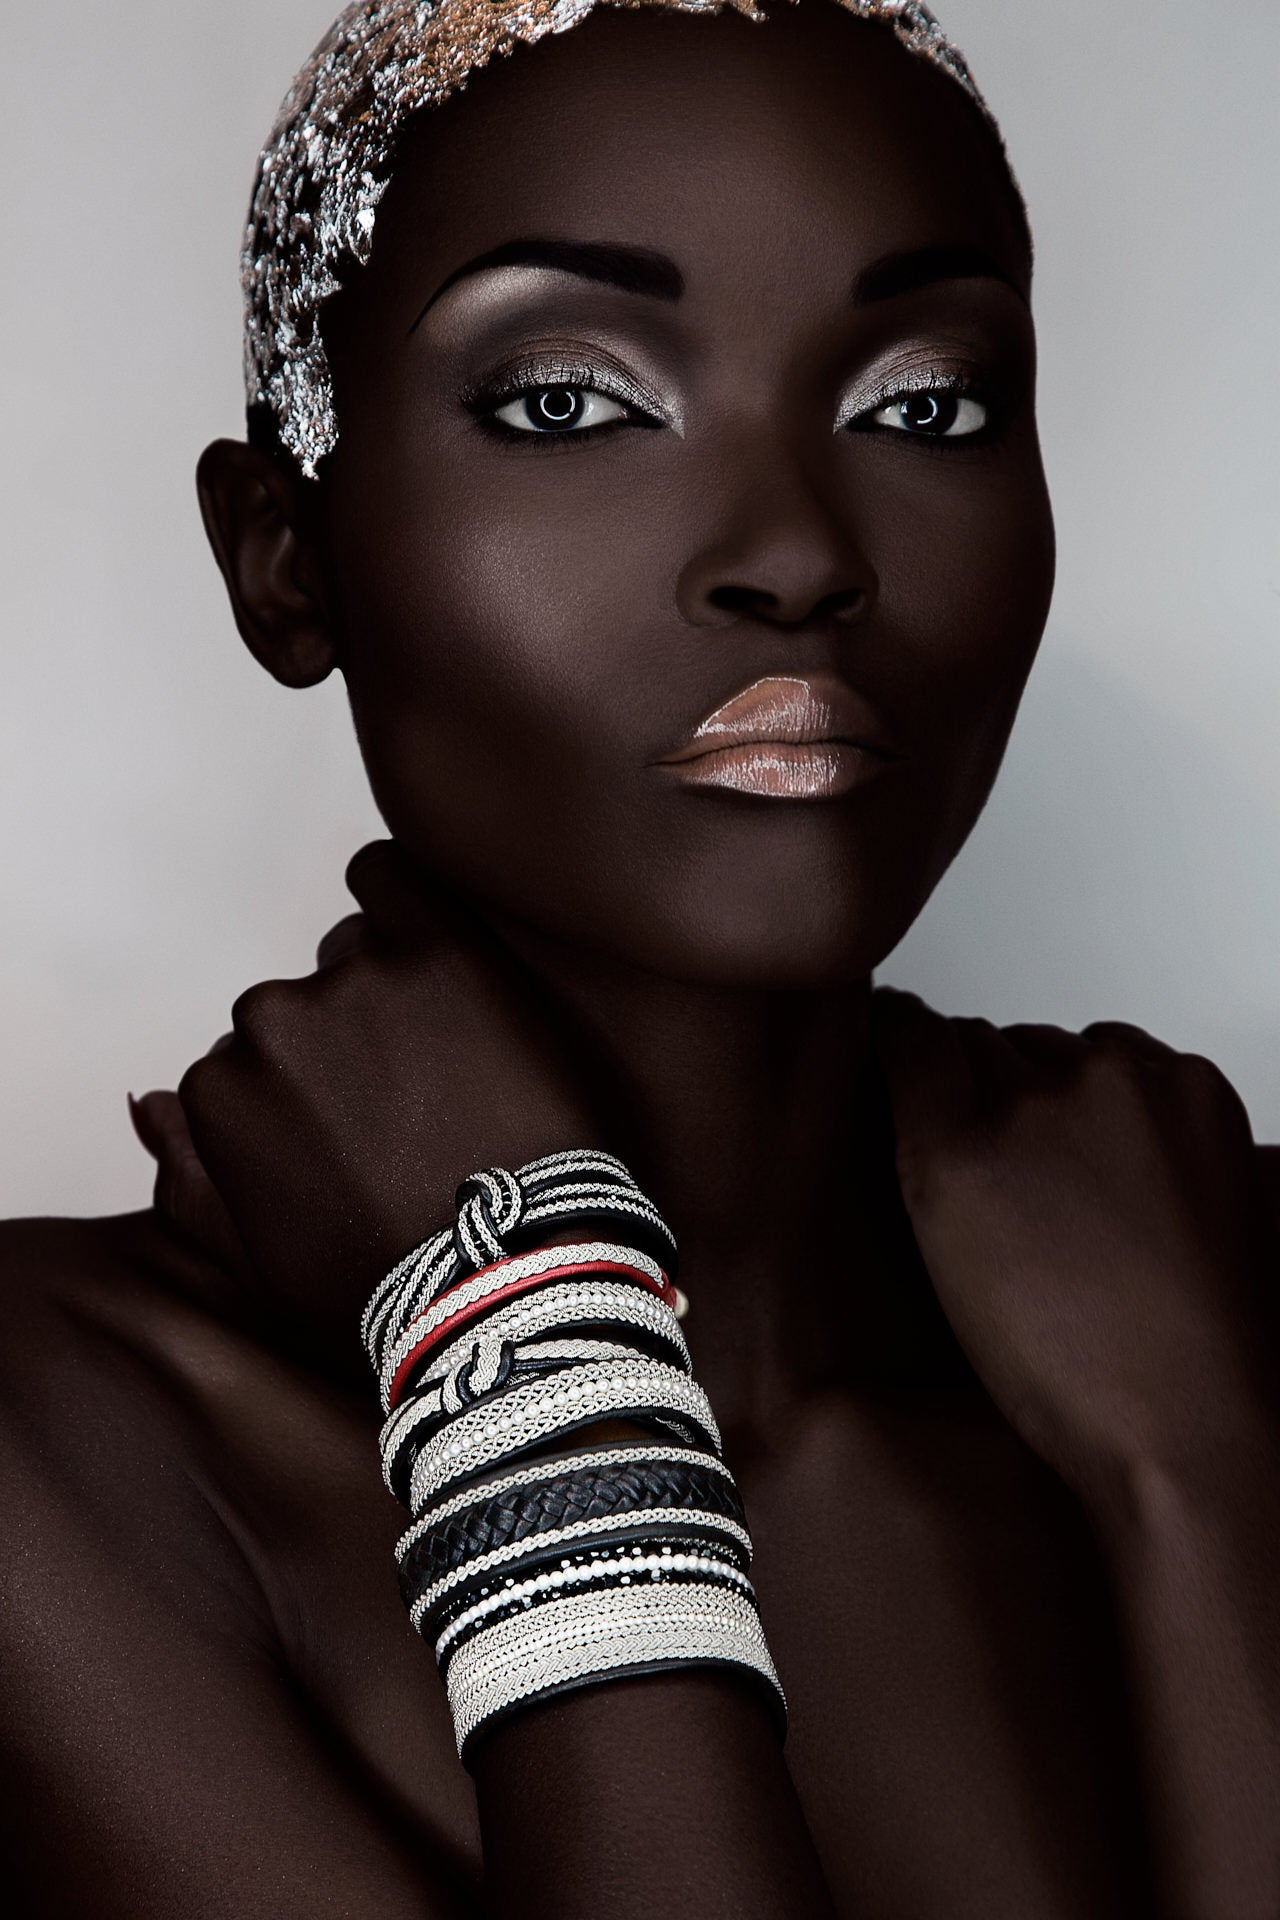 Paulo Toureiro - African Beauty 01 - Image of a beautiful African woman